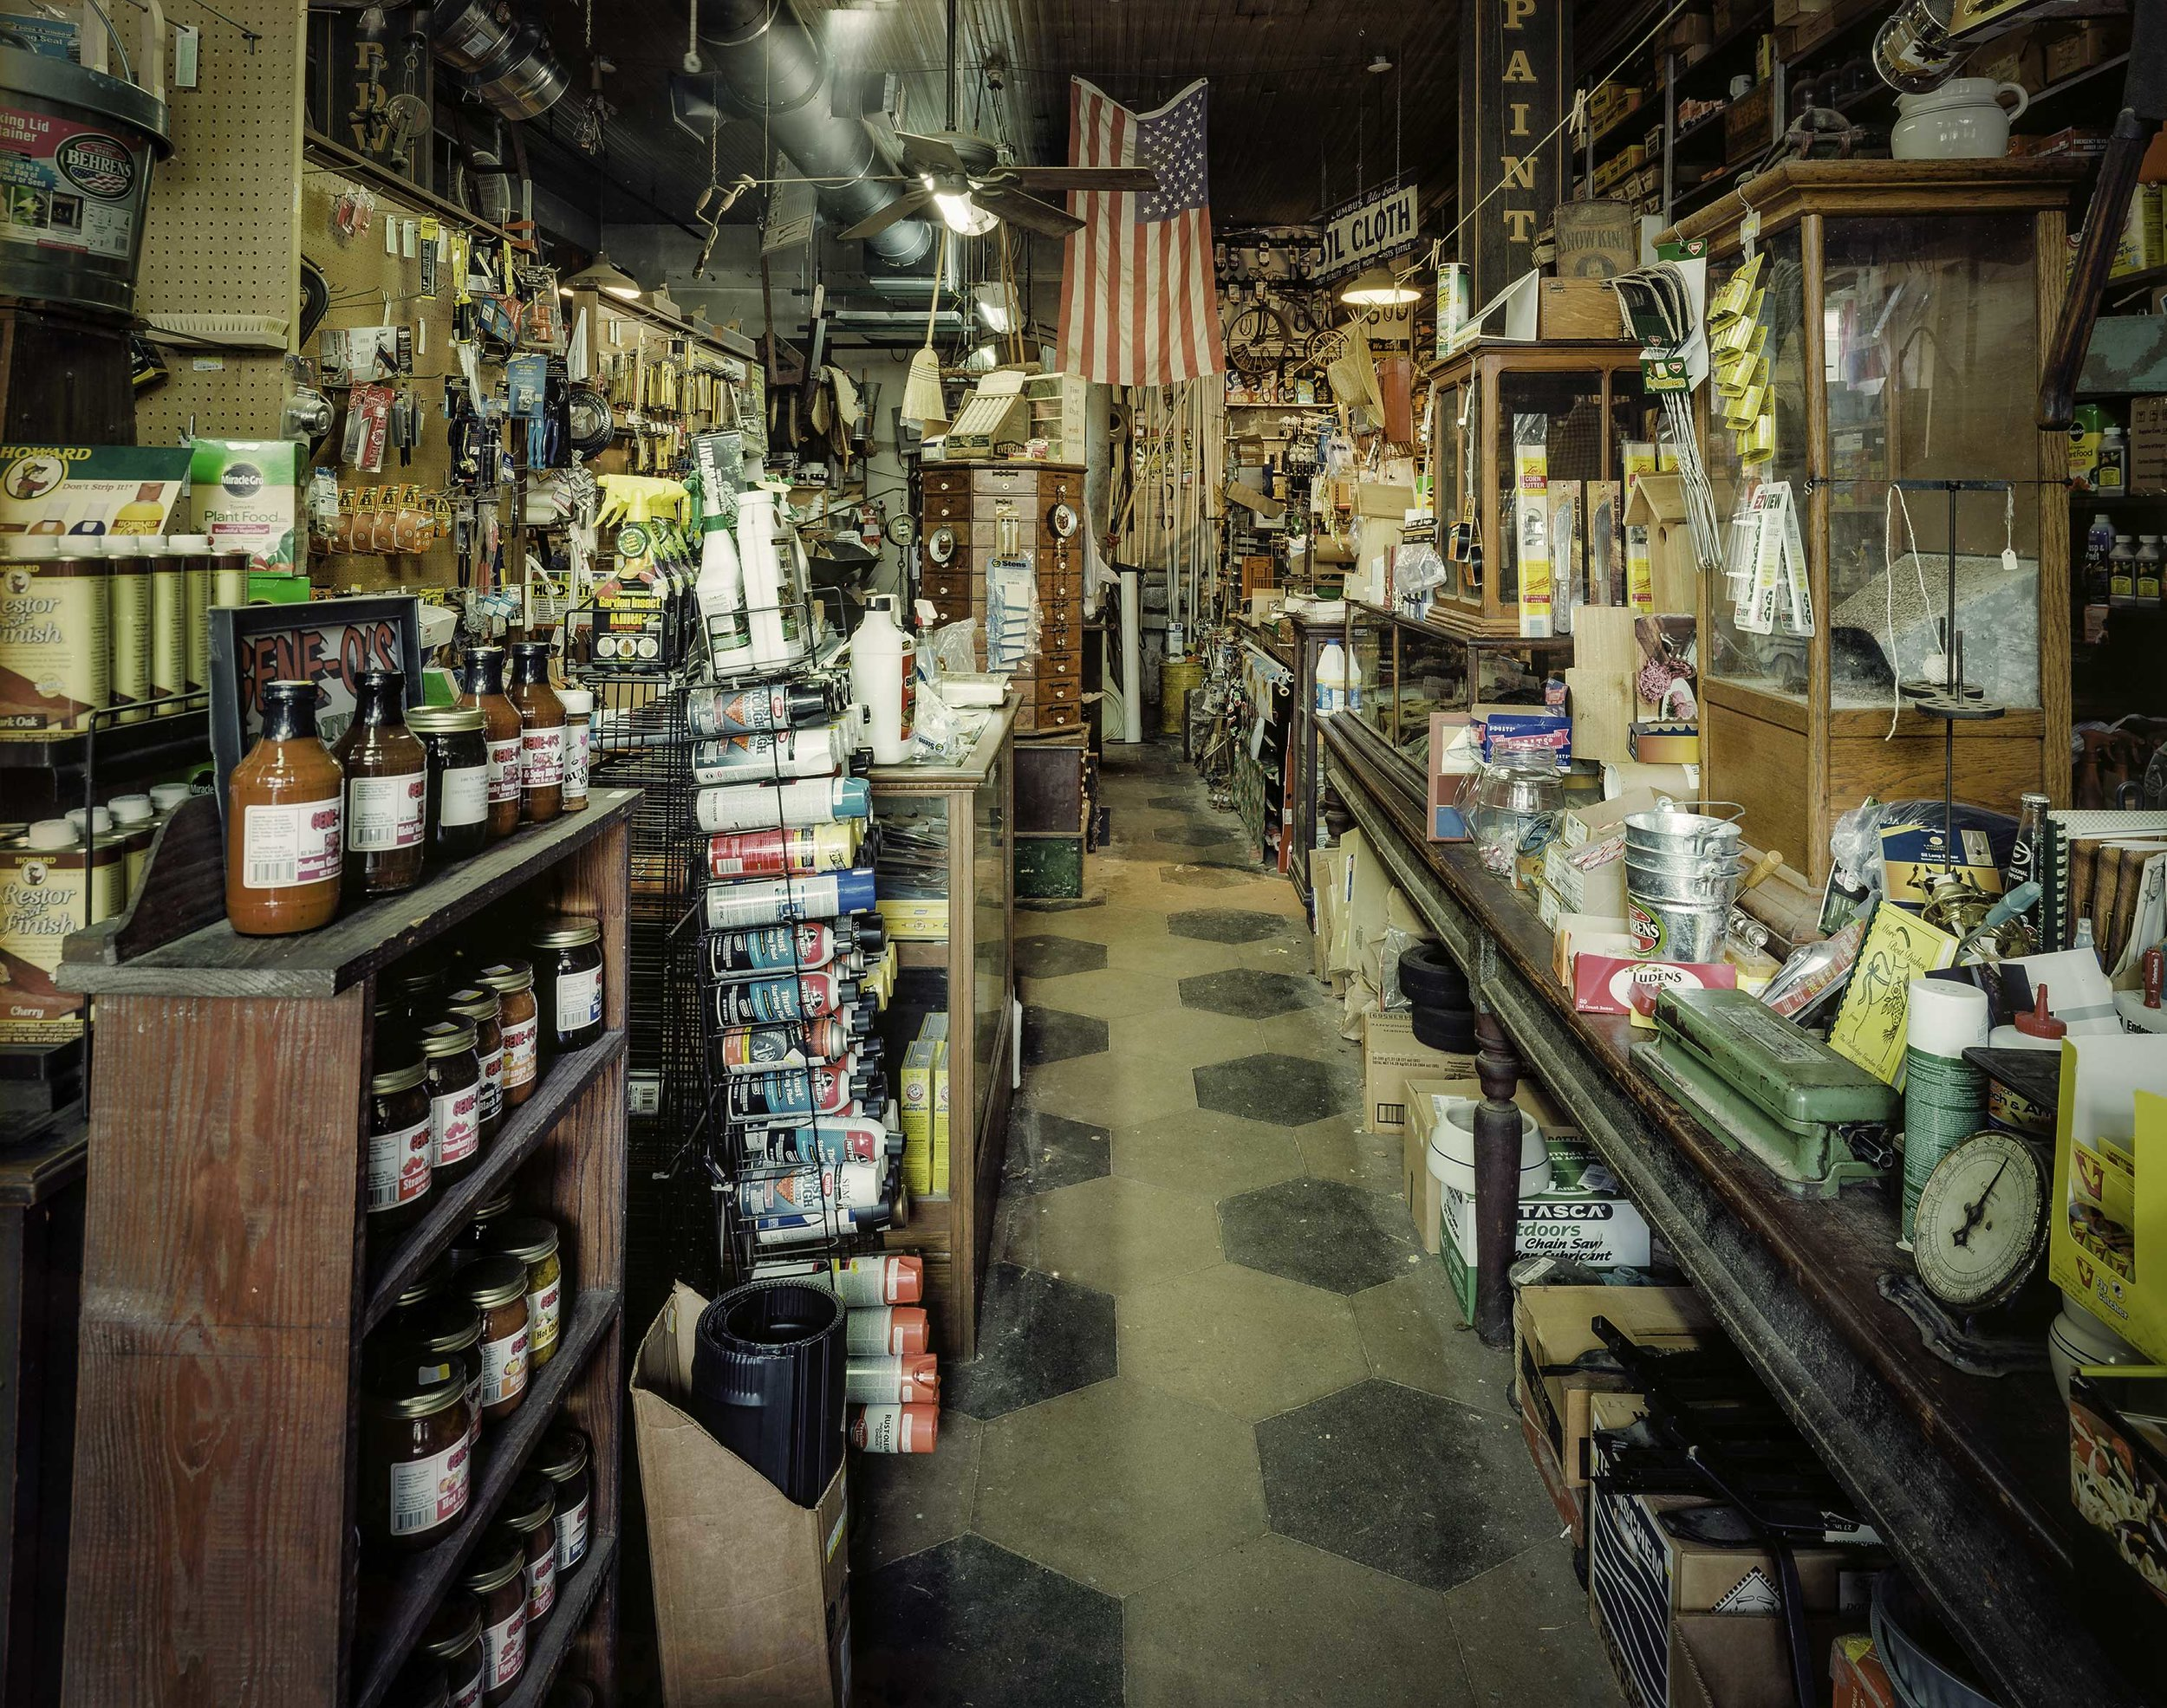 """  Rutledge Hardware"" by Charles Mintz, 32 x 40in, Inkjet Print From Scanned FIlm (2015), $1000 